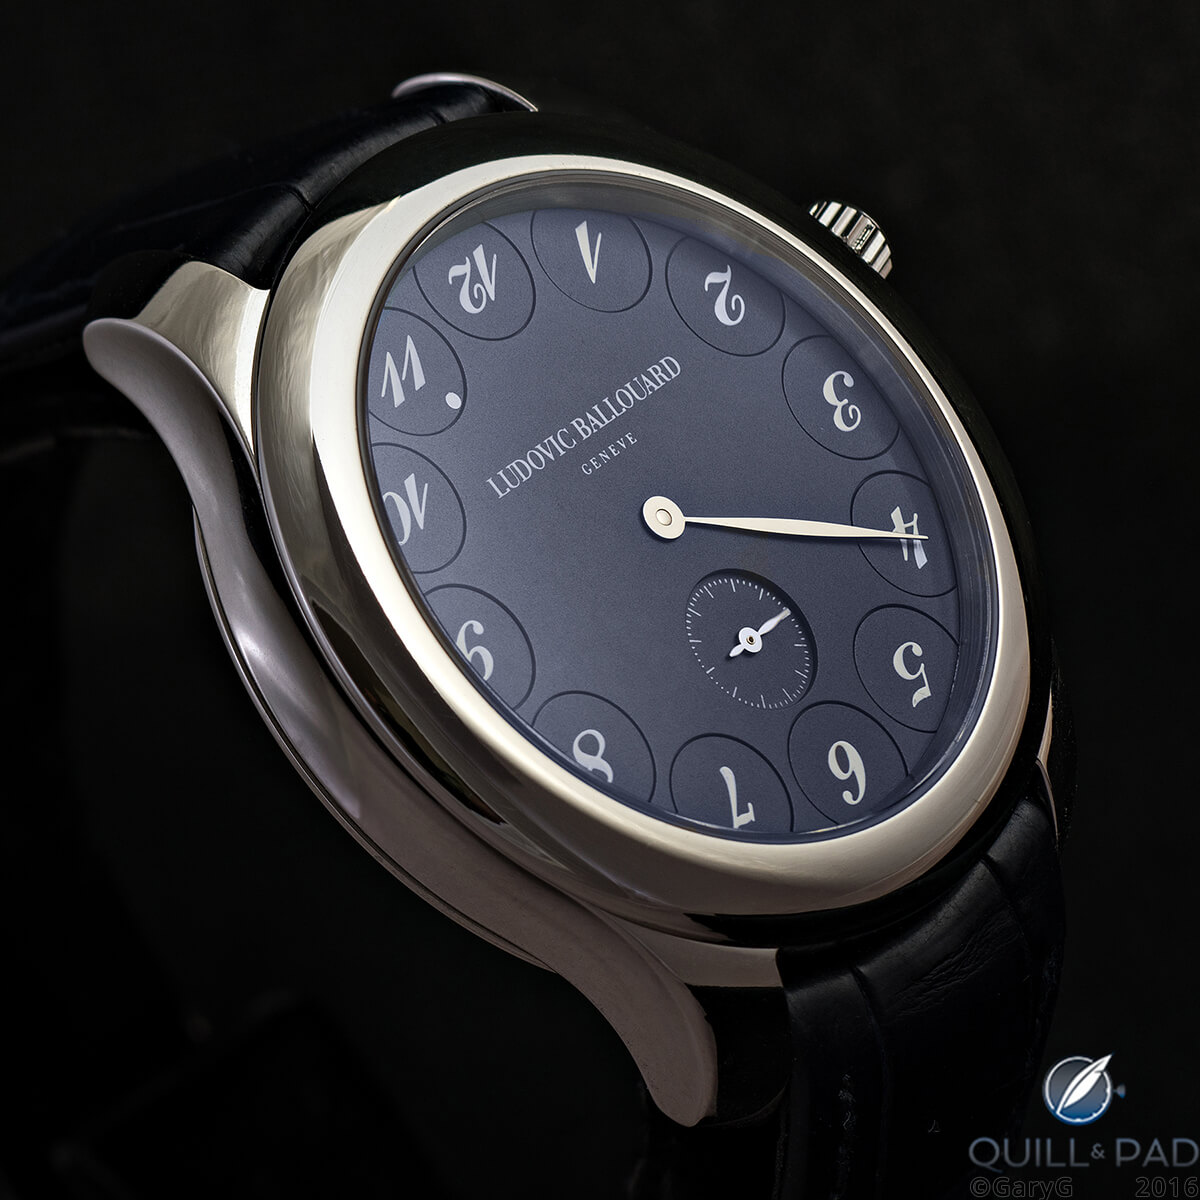 The author's Ludovic Ballouard Upside Down in platinum with blue dial